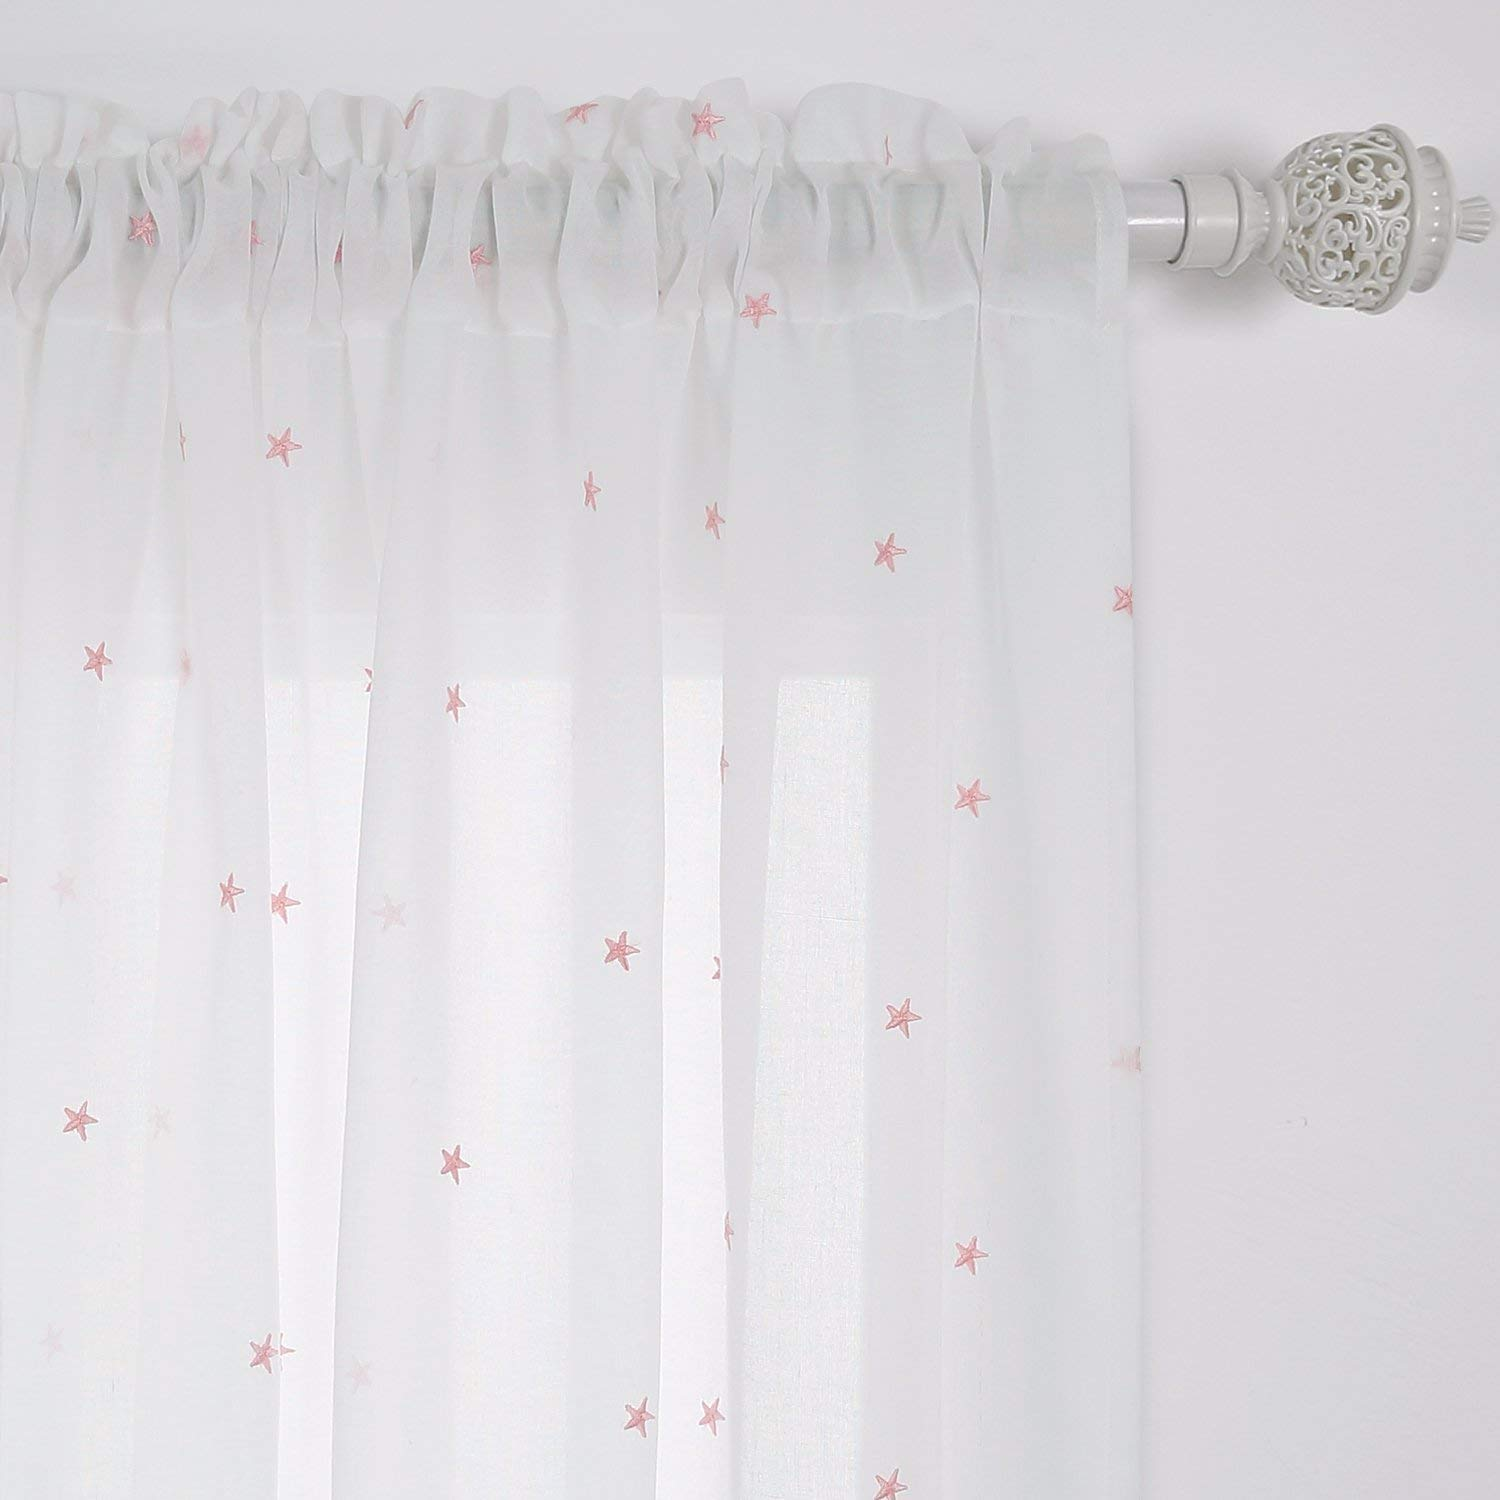 Cheap Sheer Curtains Pink Find Sheer Curtains Pink Deals On Line At